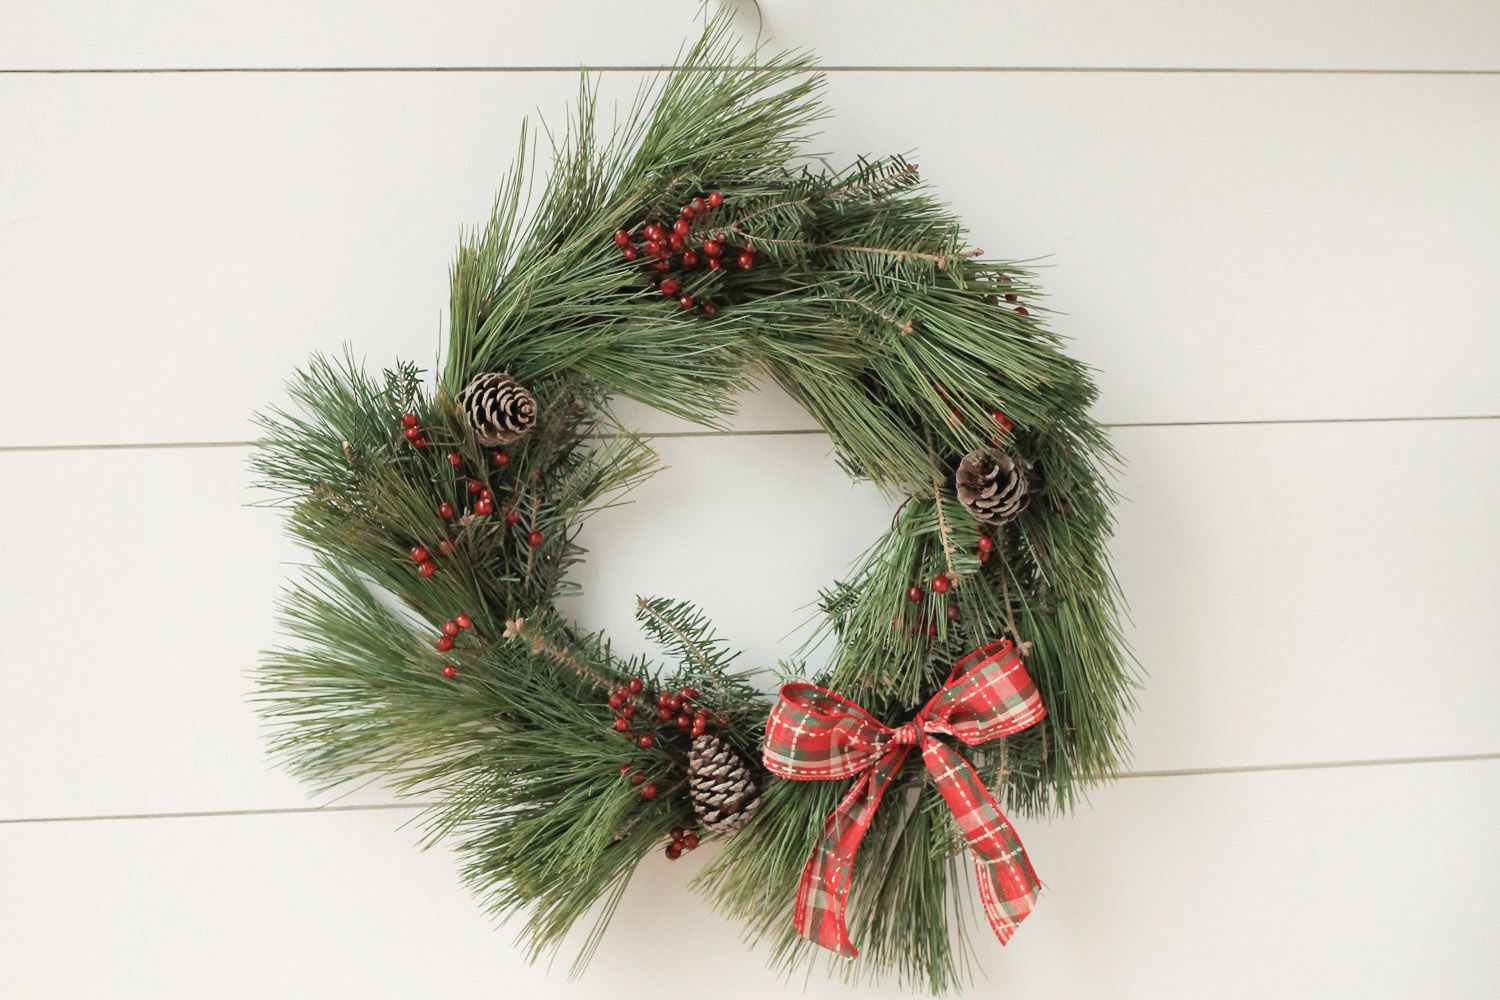 Diy Rustic Christmas Wreath Tutorial Angela Marie Made